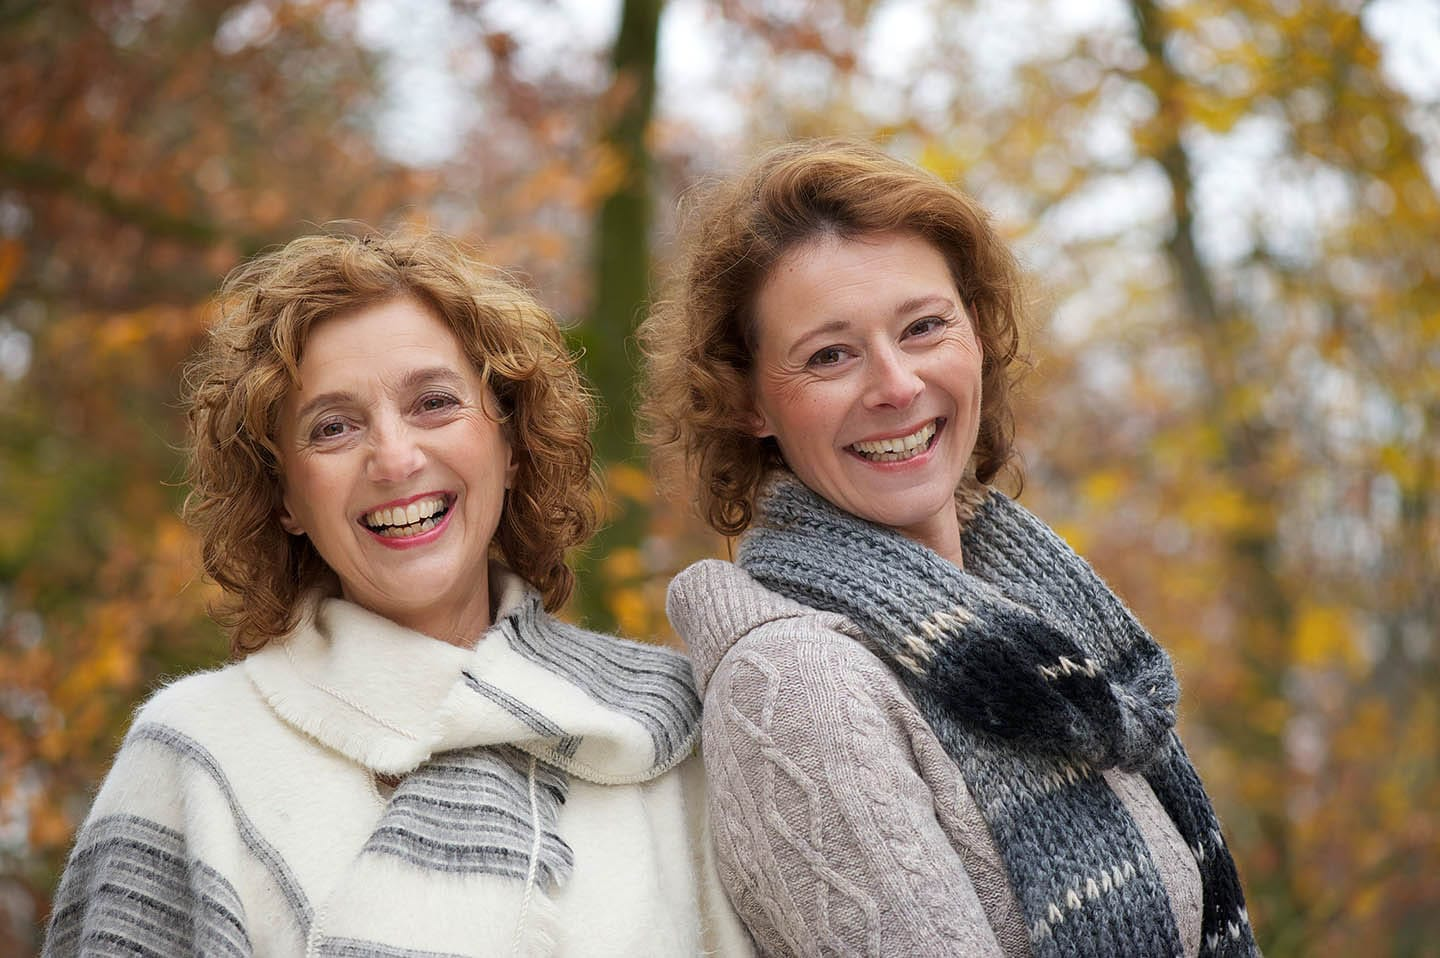 two woman smiling outside